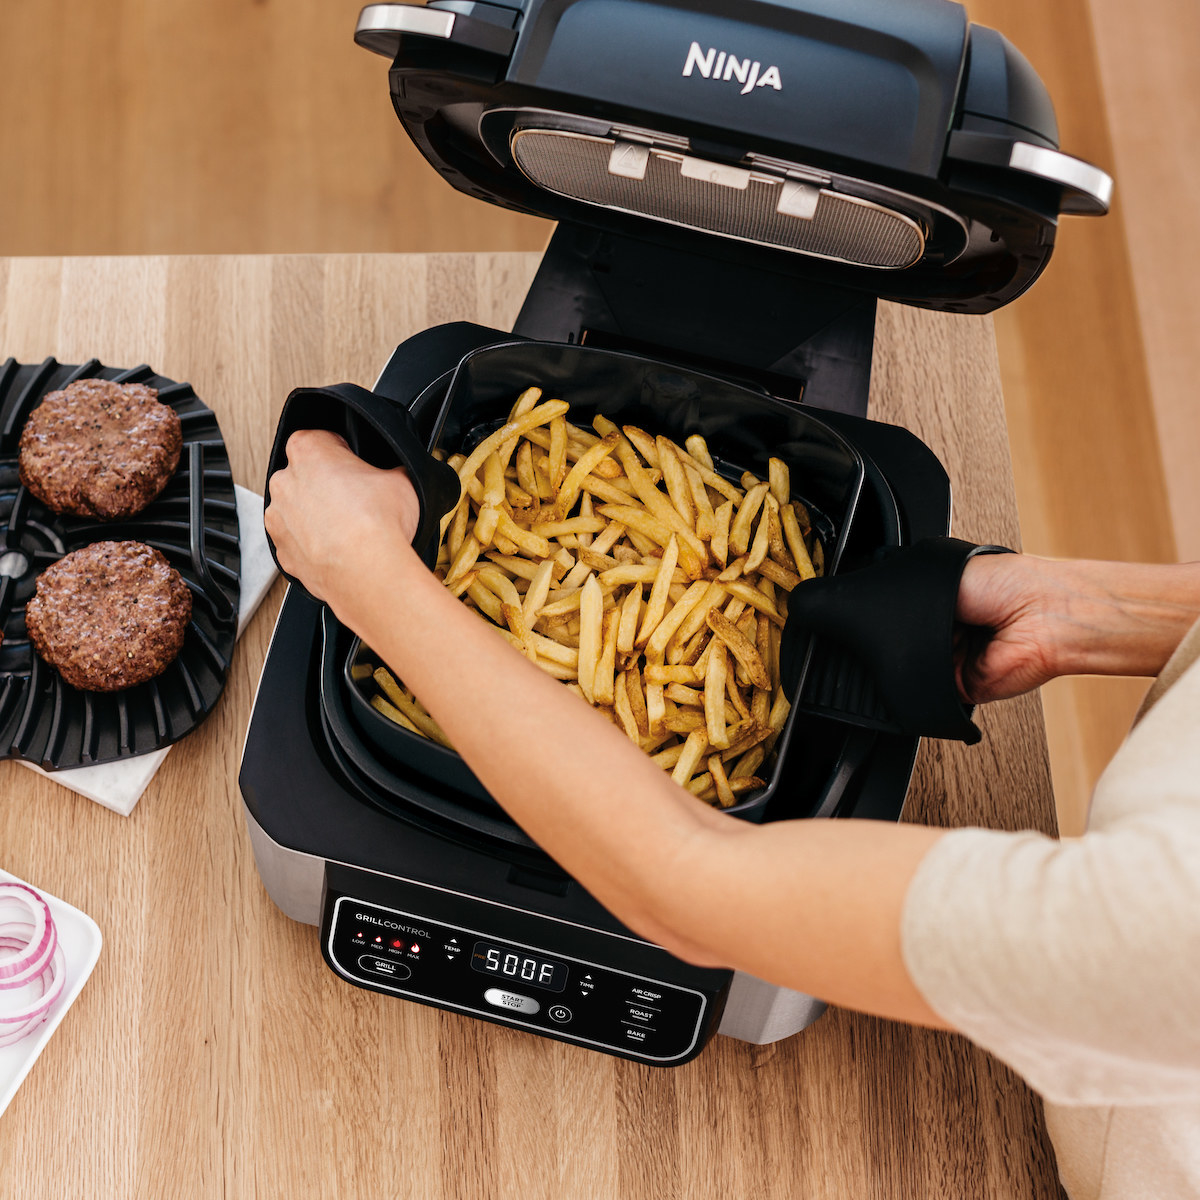 person lifting a tray of french fries out of a ninja air fryer